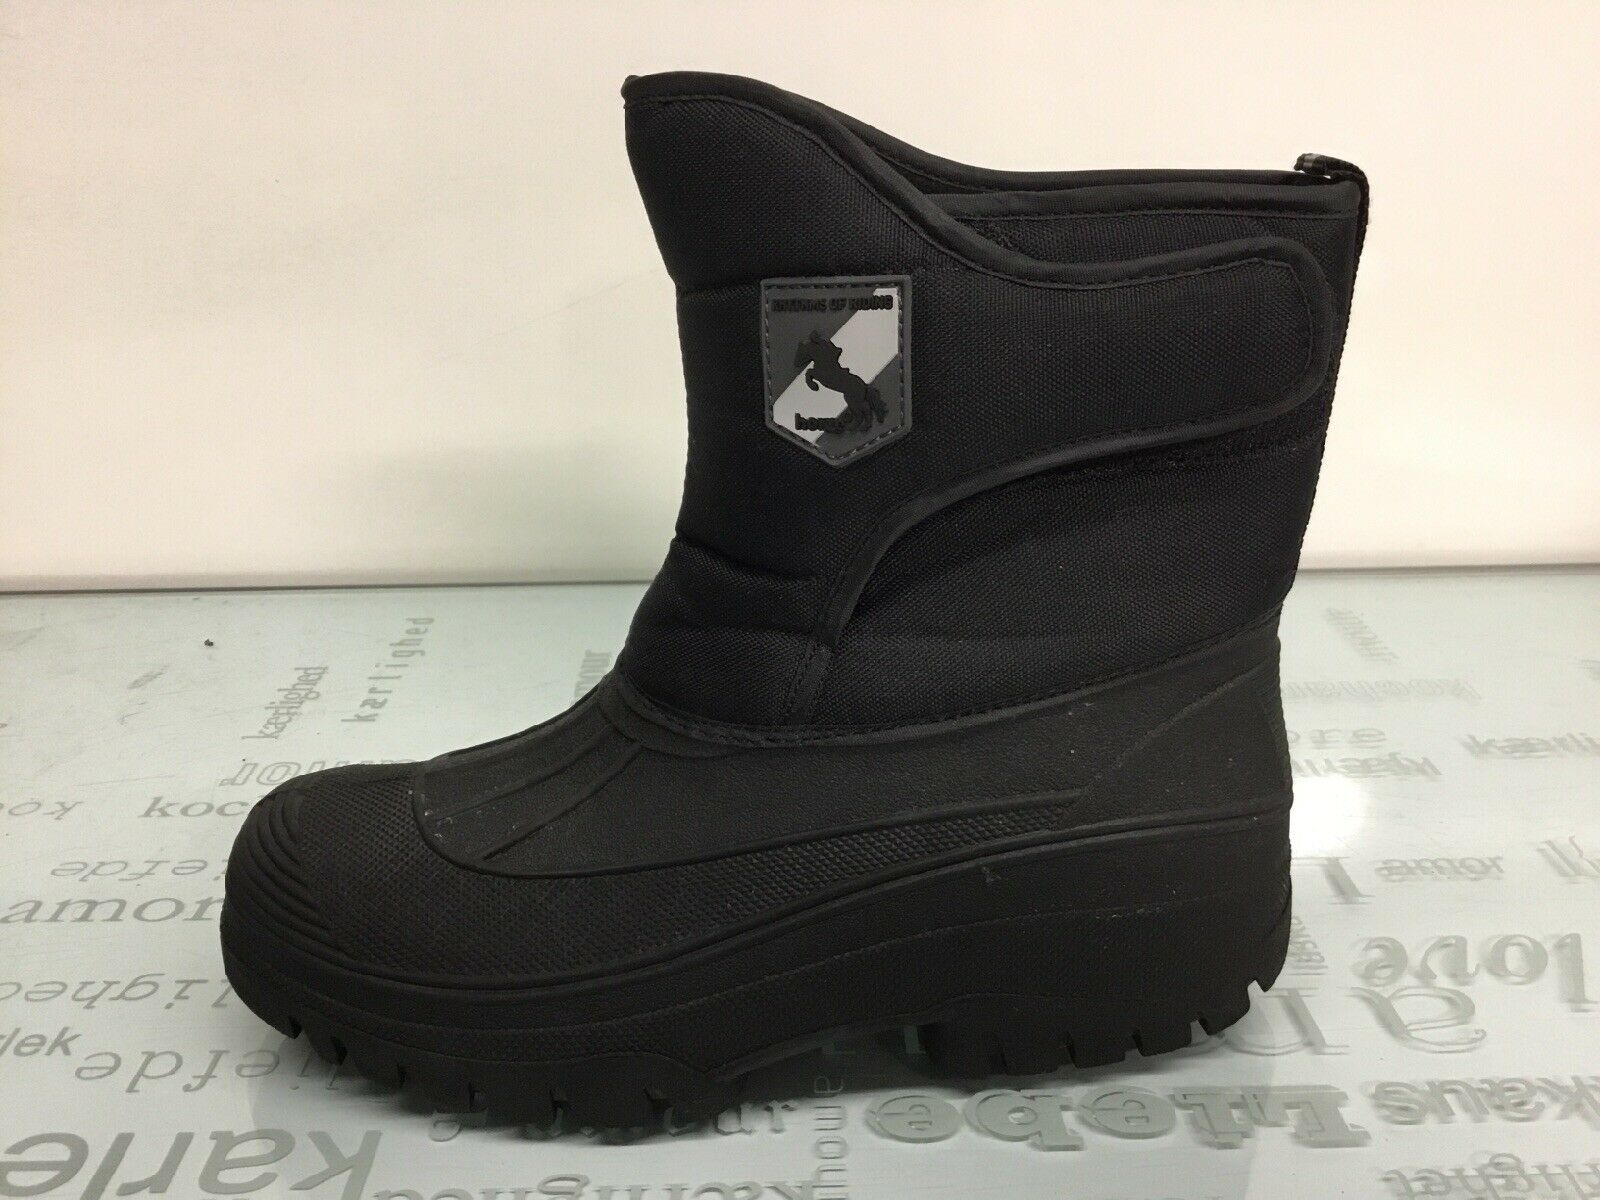 Horze Equestrian Stall Boots Size 8.5(39).* - image 4